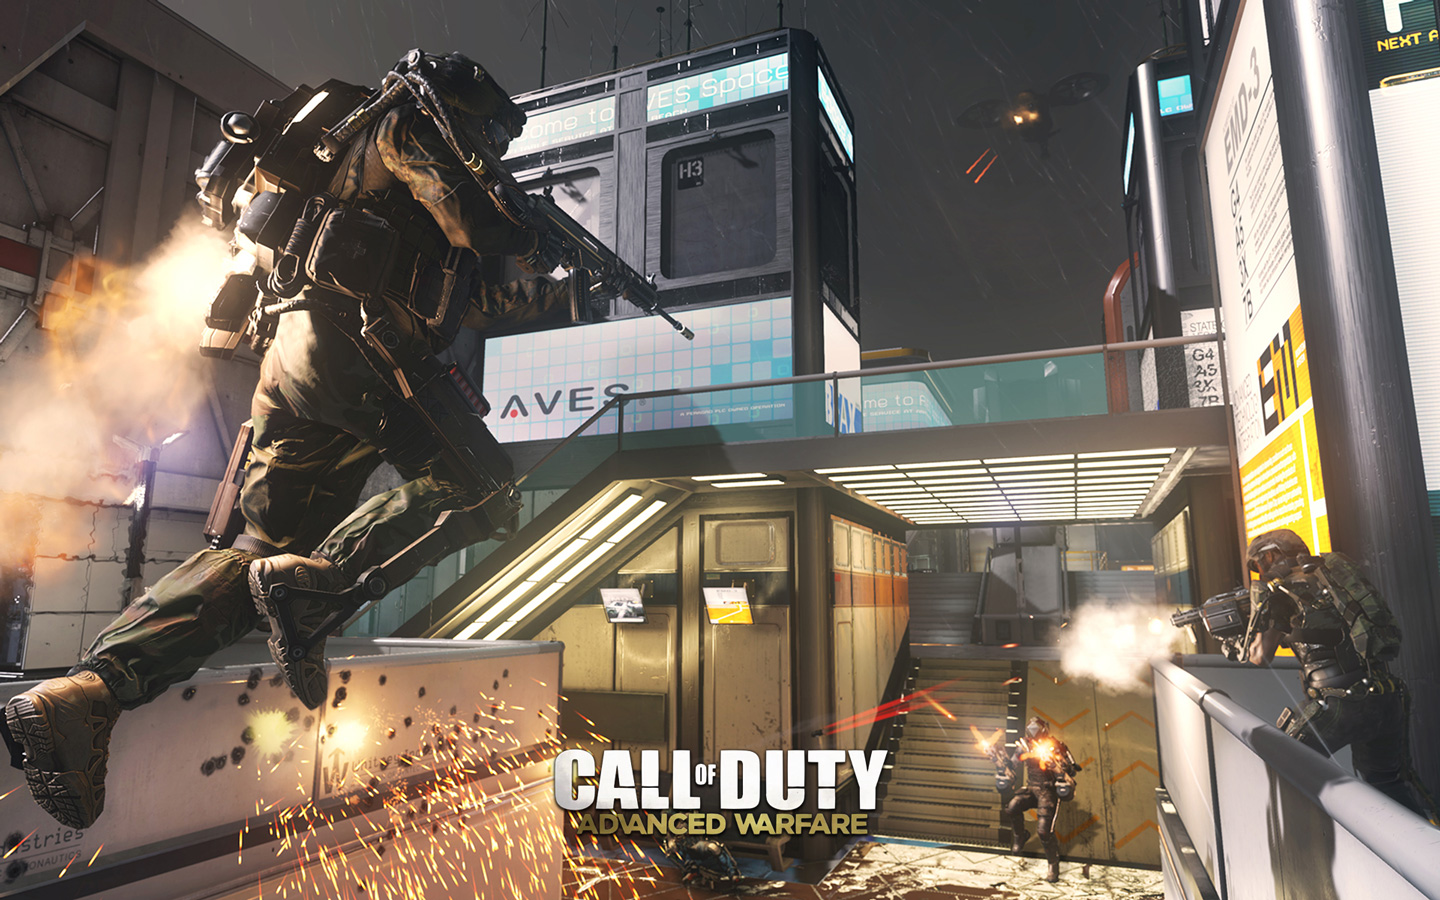 Free Call of Duty: Advanced Warfare Wallpaper in 1440x900